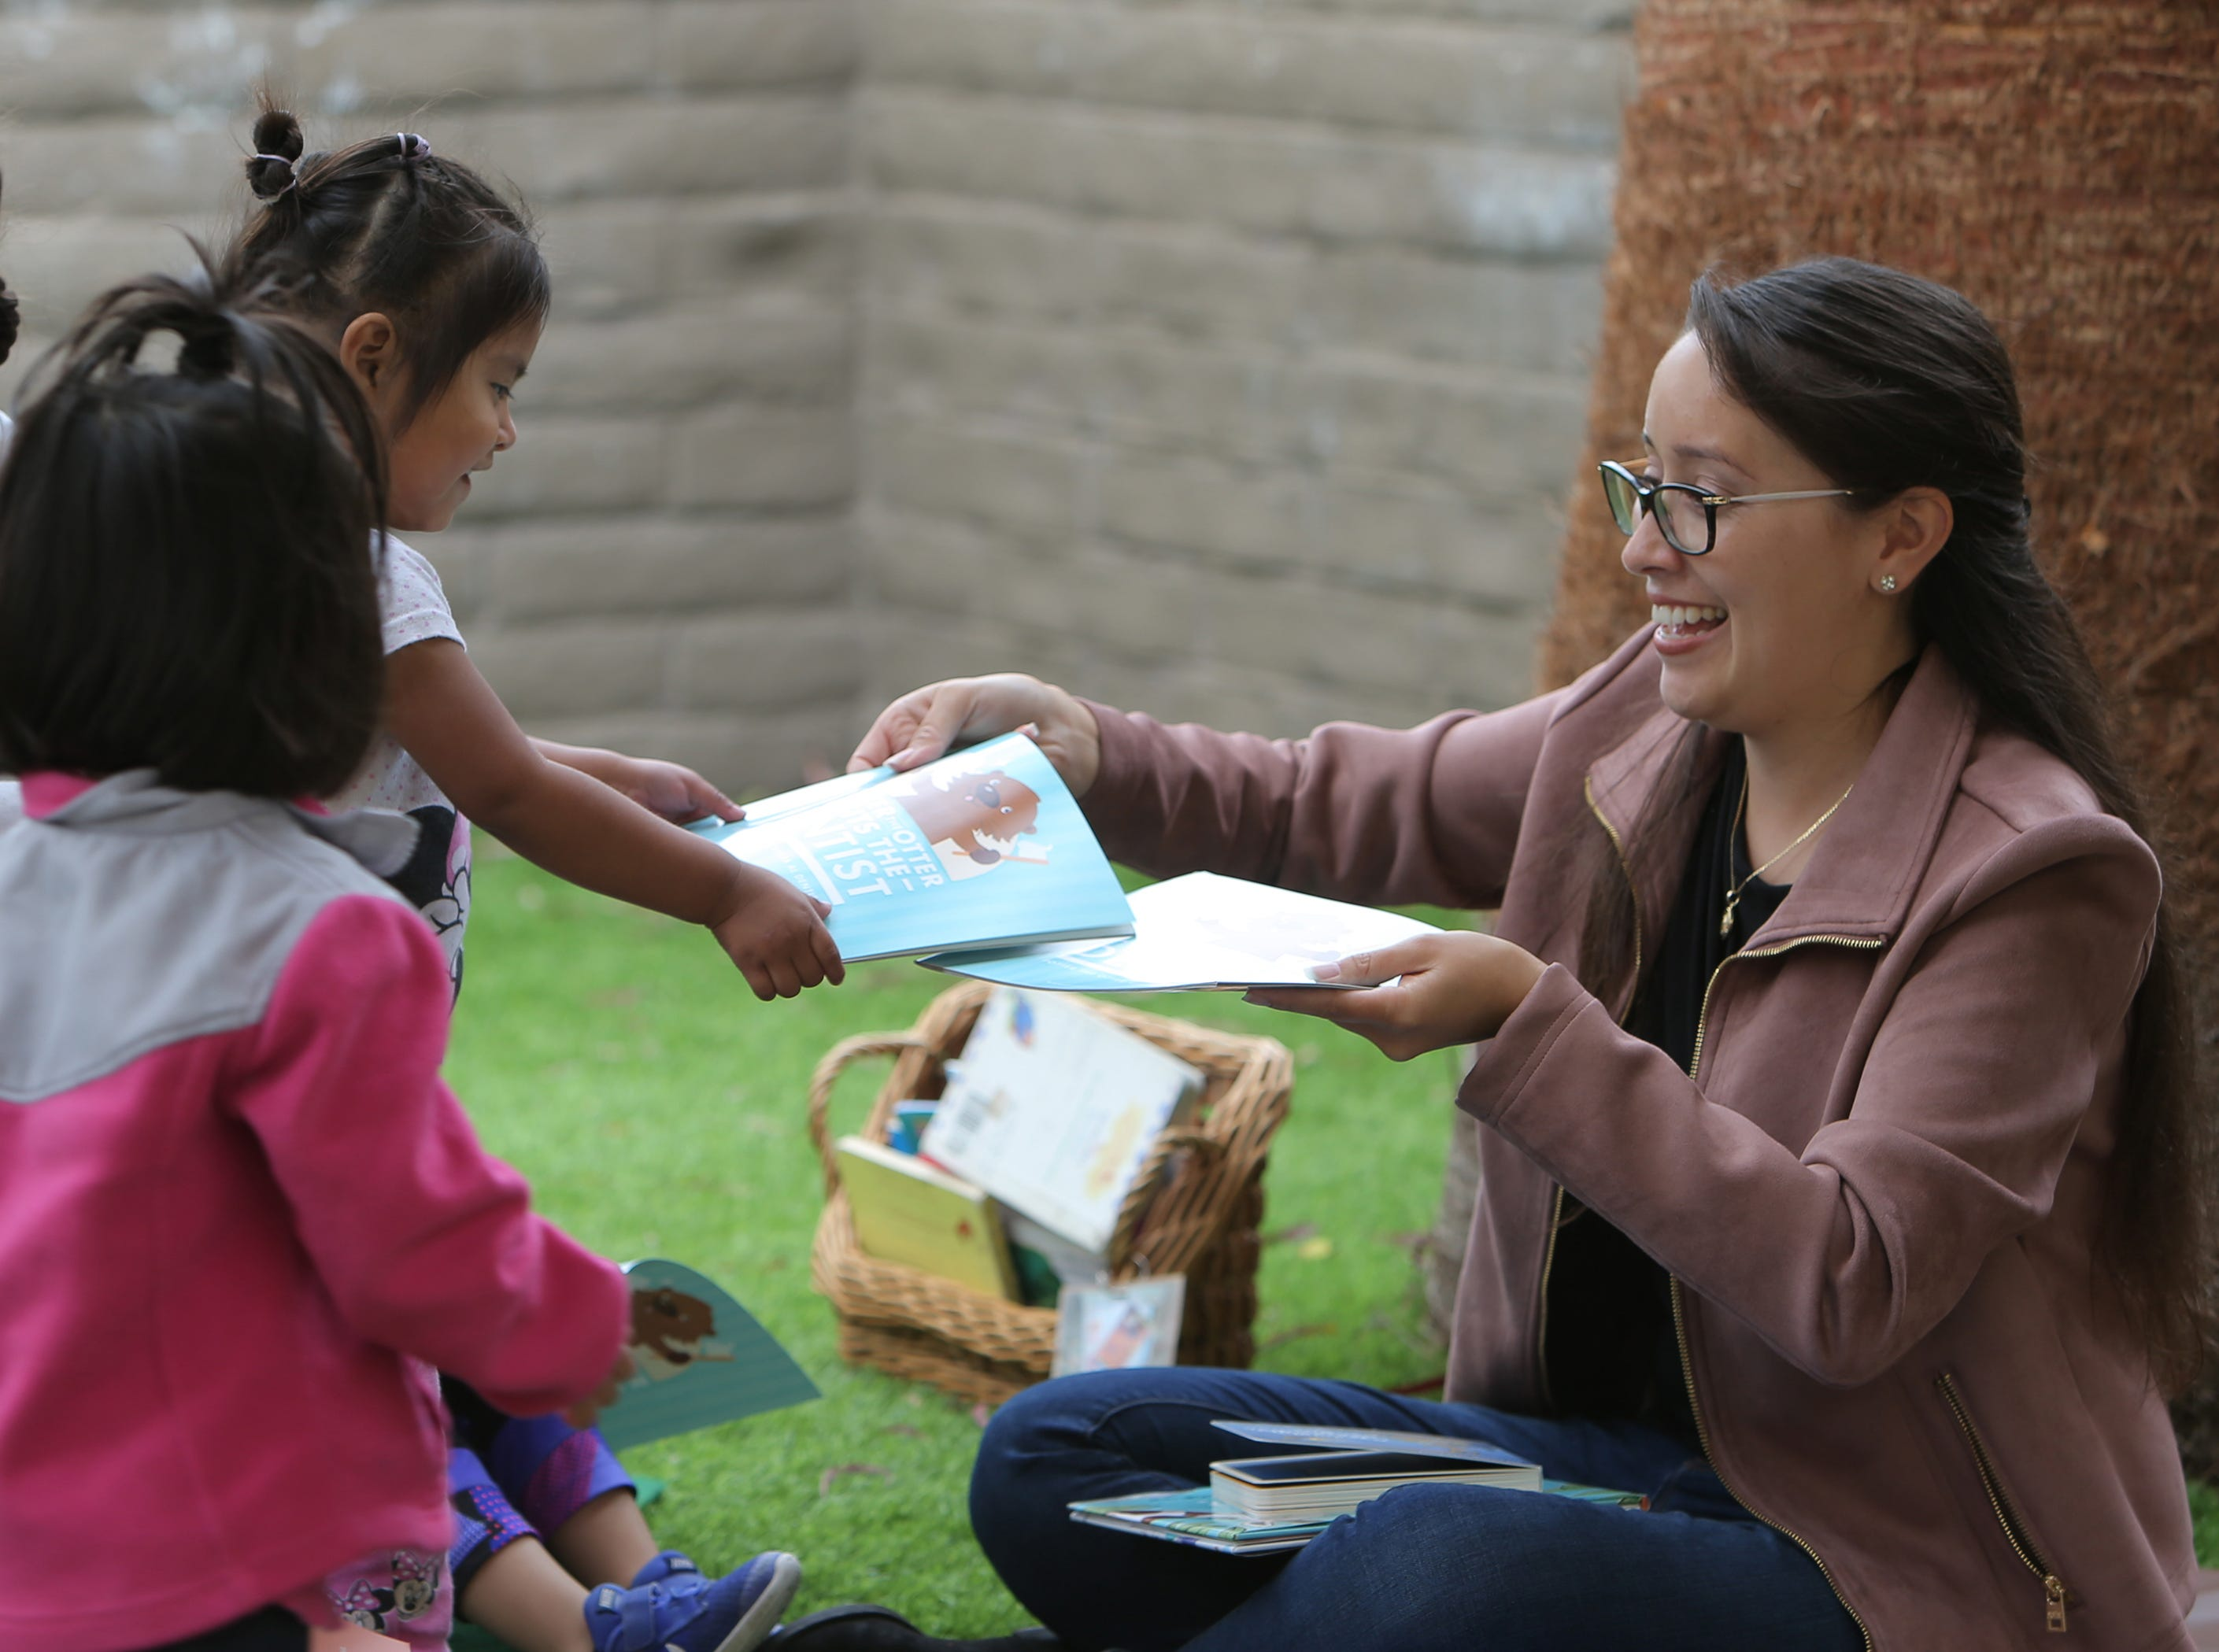 Yoana Lopez, 2, receives to book from Oxnard City Council member Vianey Lopez during the Take 5 and Read to Kids campaign Friday at La Escuelita Child Development Center in Oxnard.